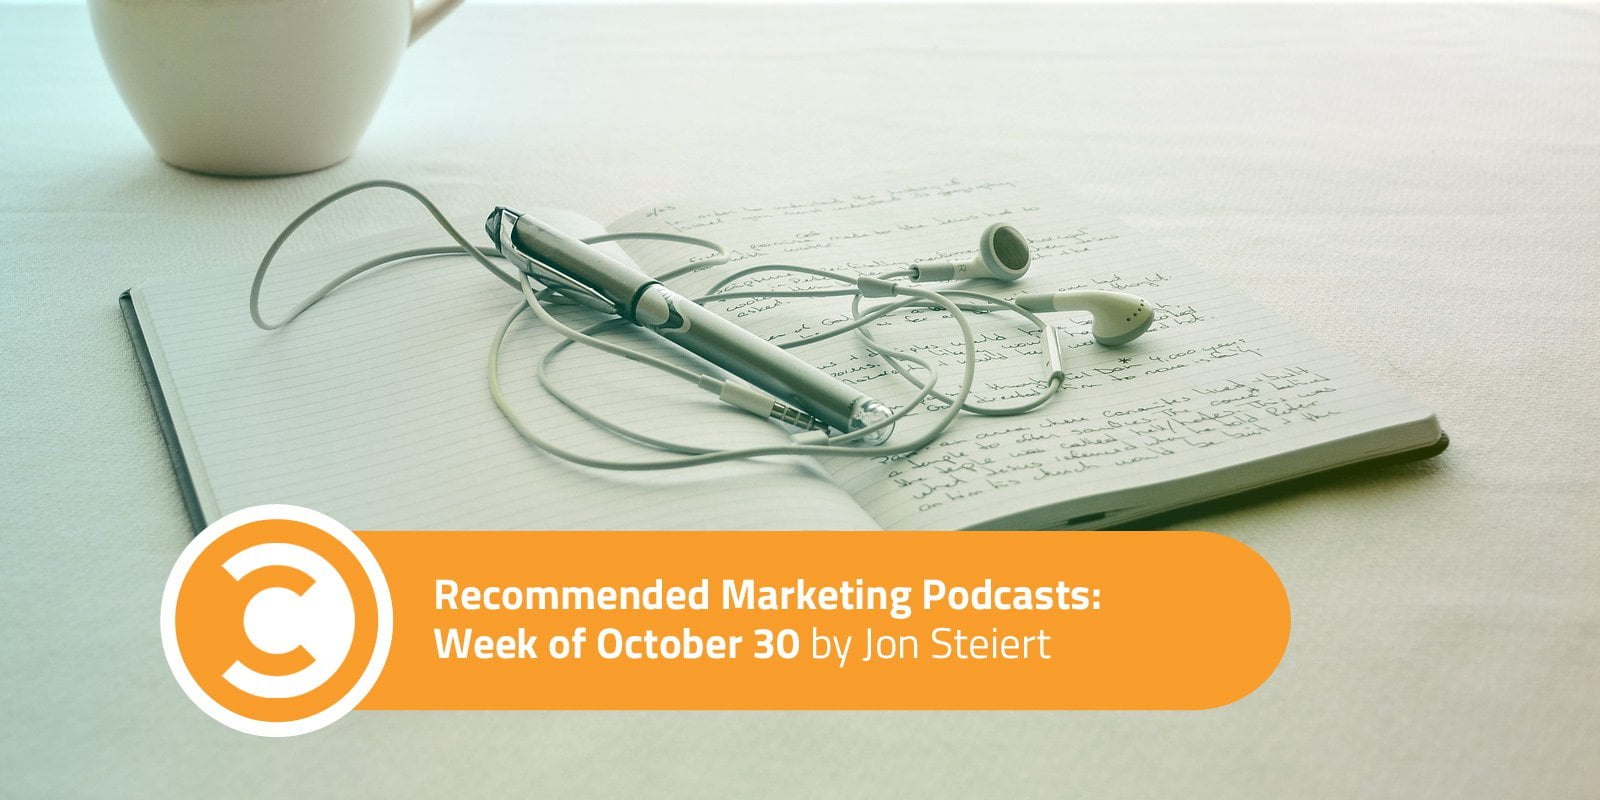 Recommended Marketing Podcasts: Week of October 30